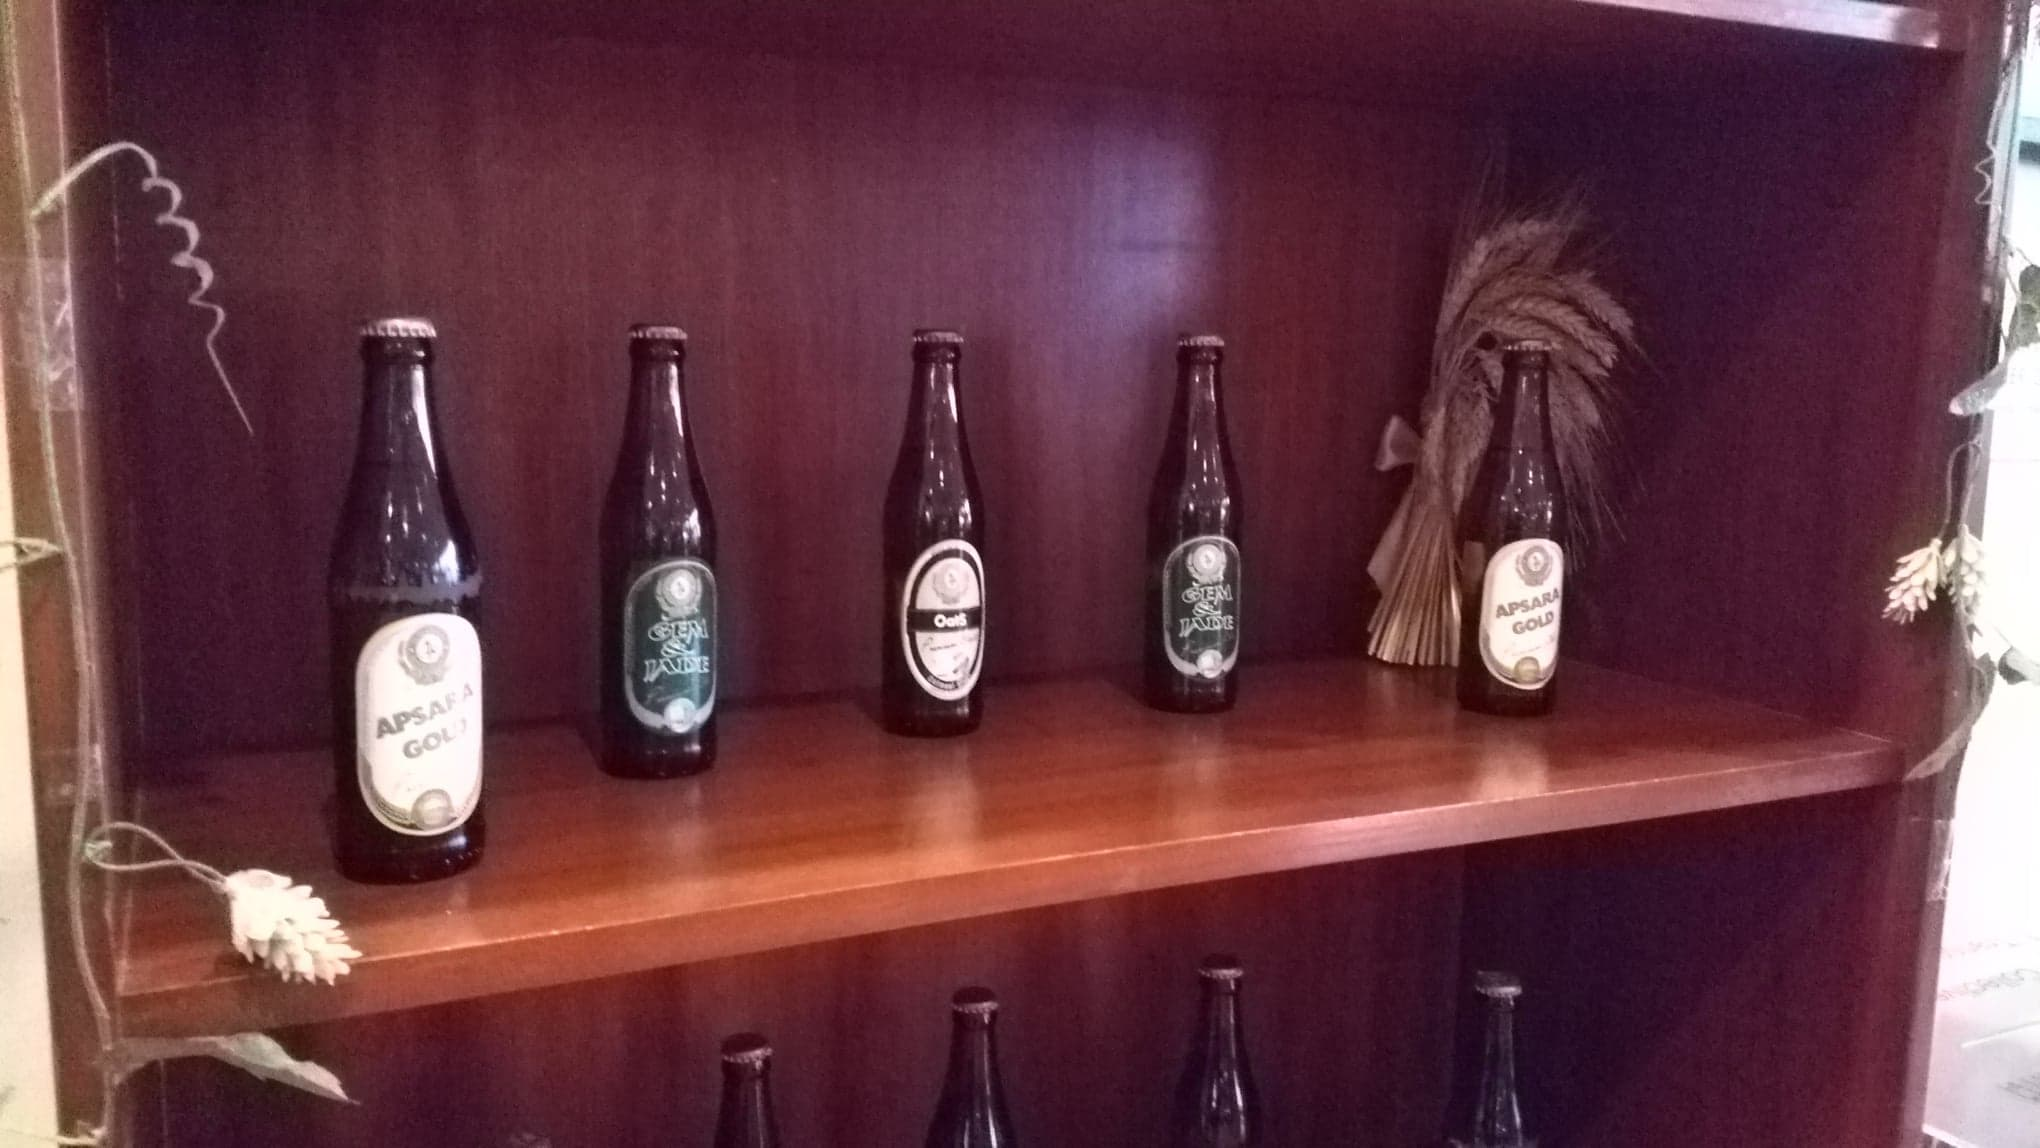 Himawary Cambodian Craft Brewery